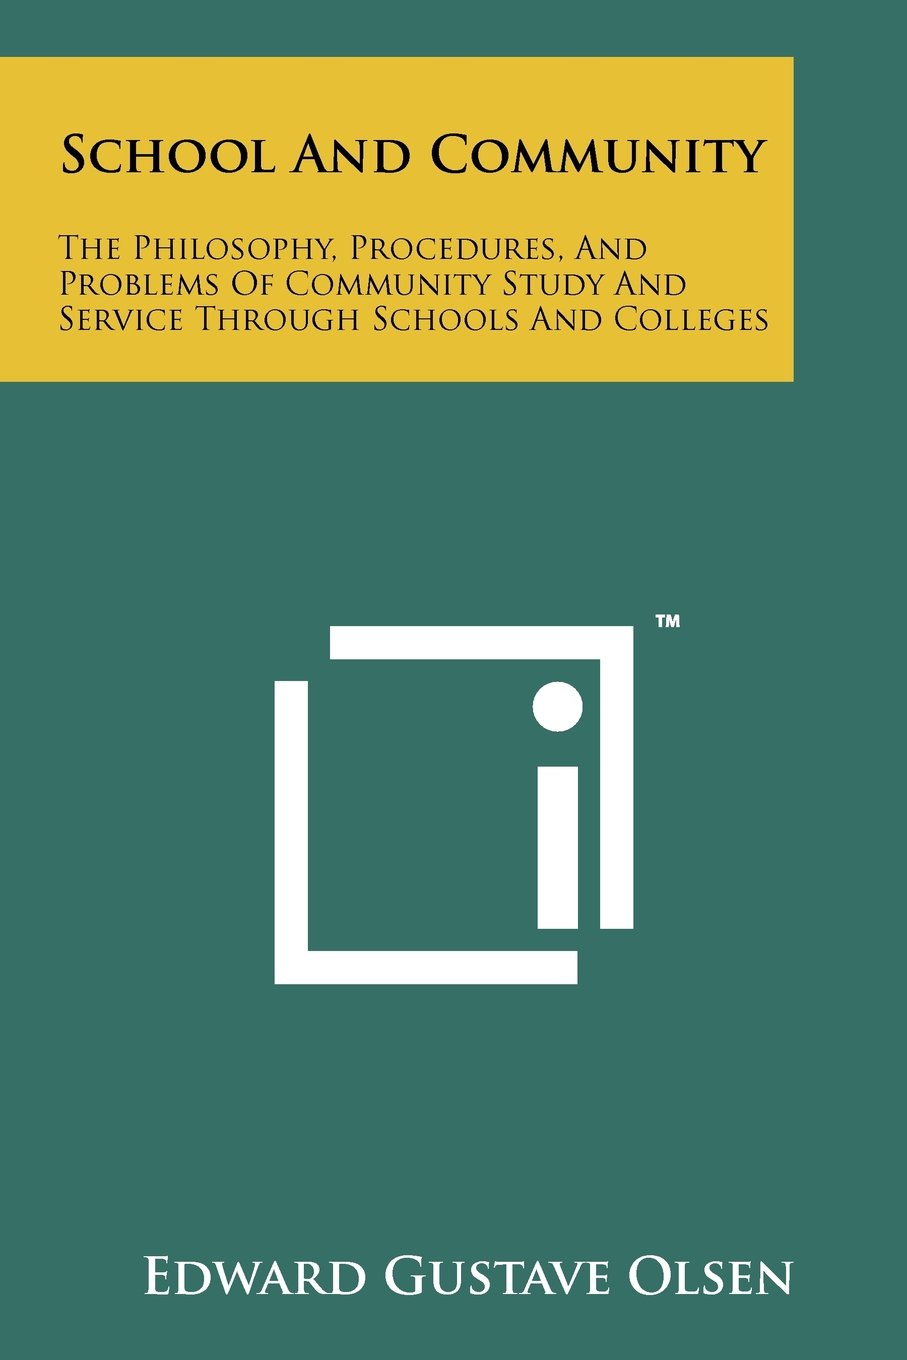 Download School And Community: The Philosophy, Procedures, And Problems Of Community Study And Service Through Schools And Colleges pdf